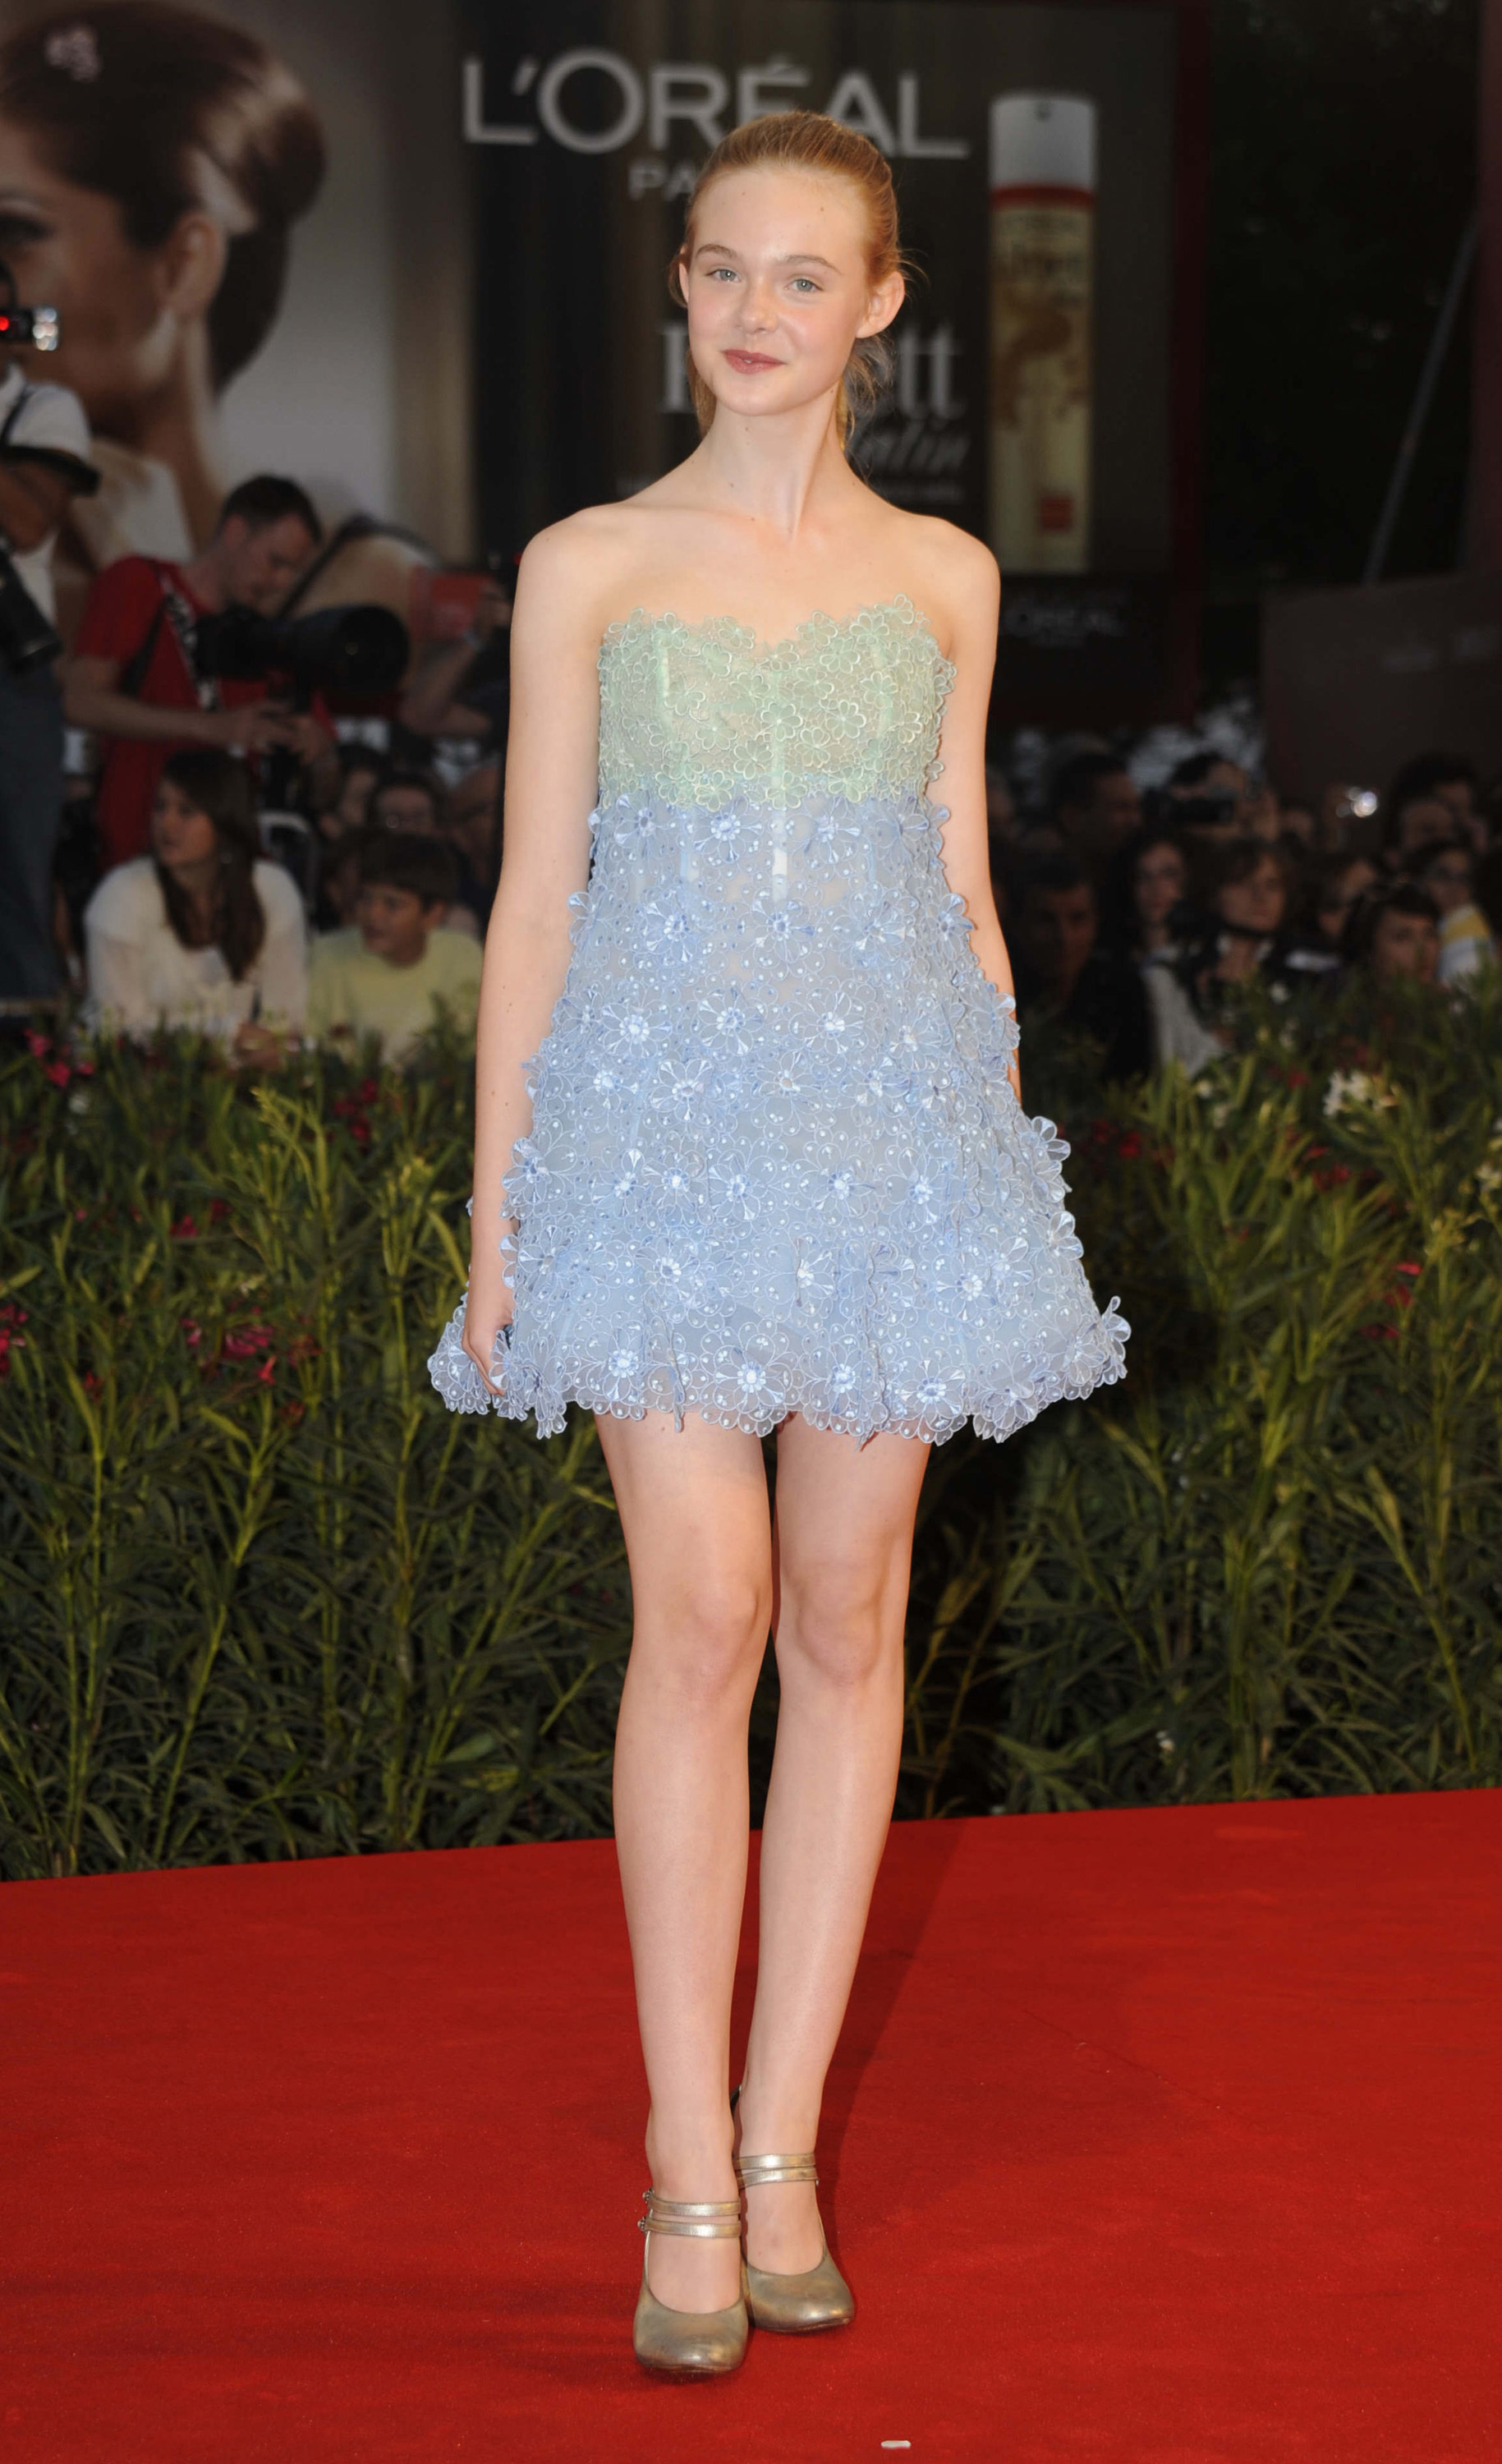 12 year old Elle Fanning at the Venice Film Festival